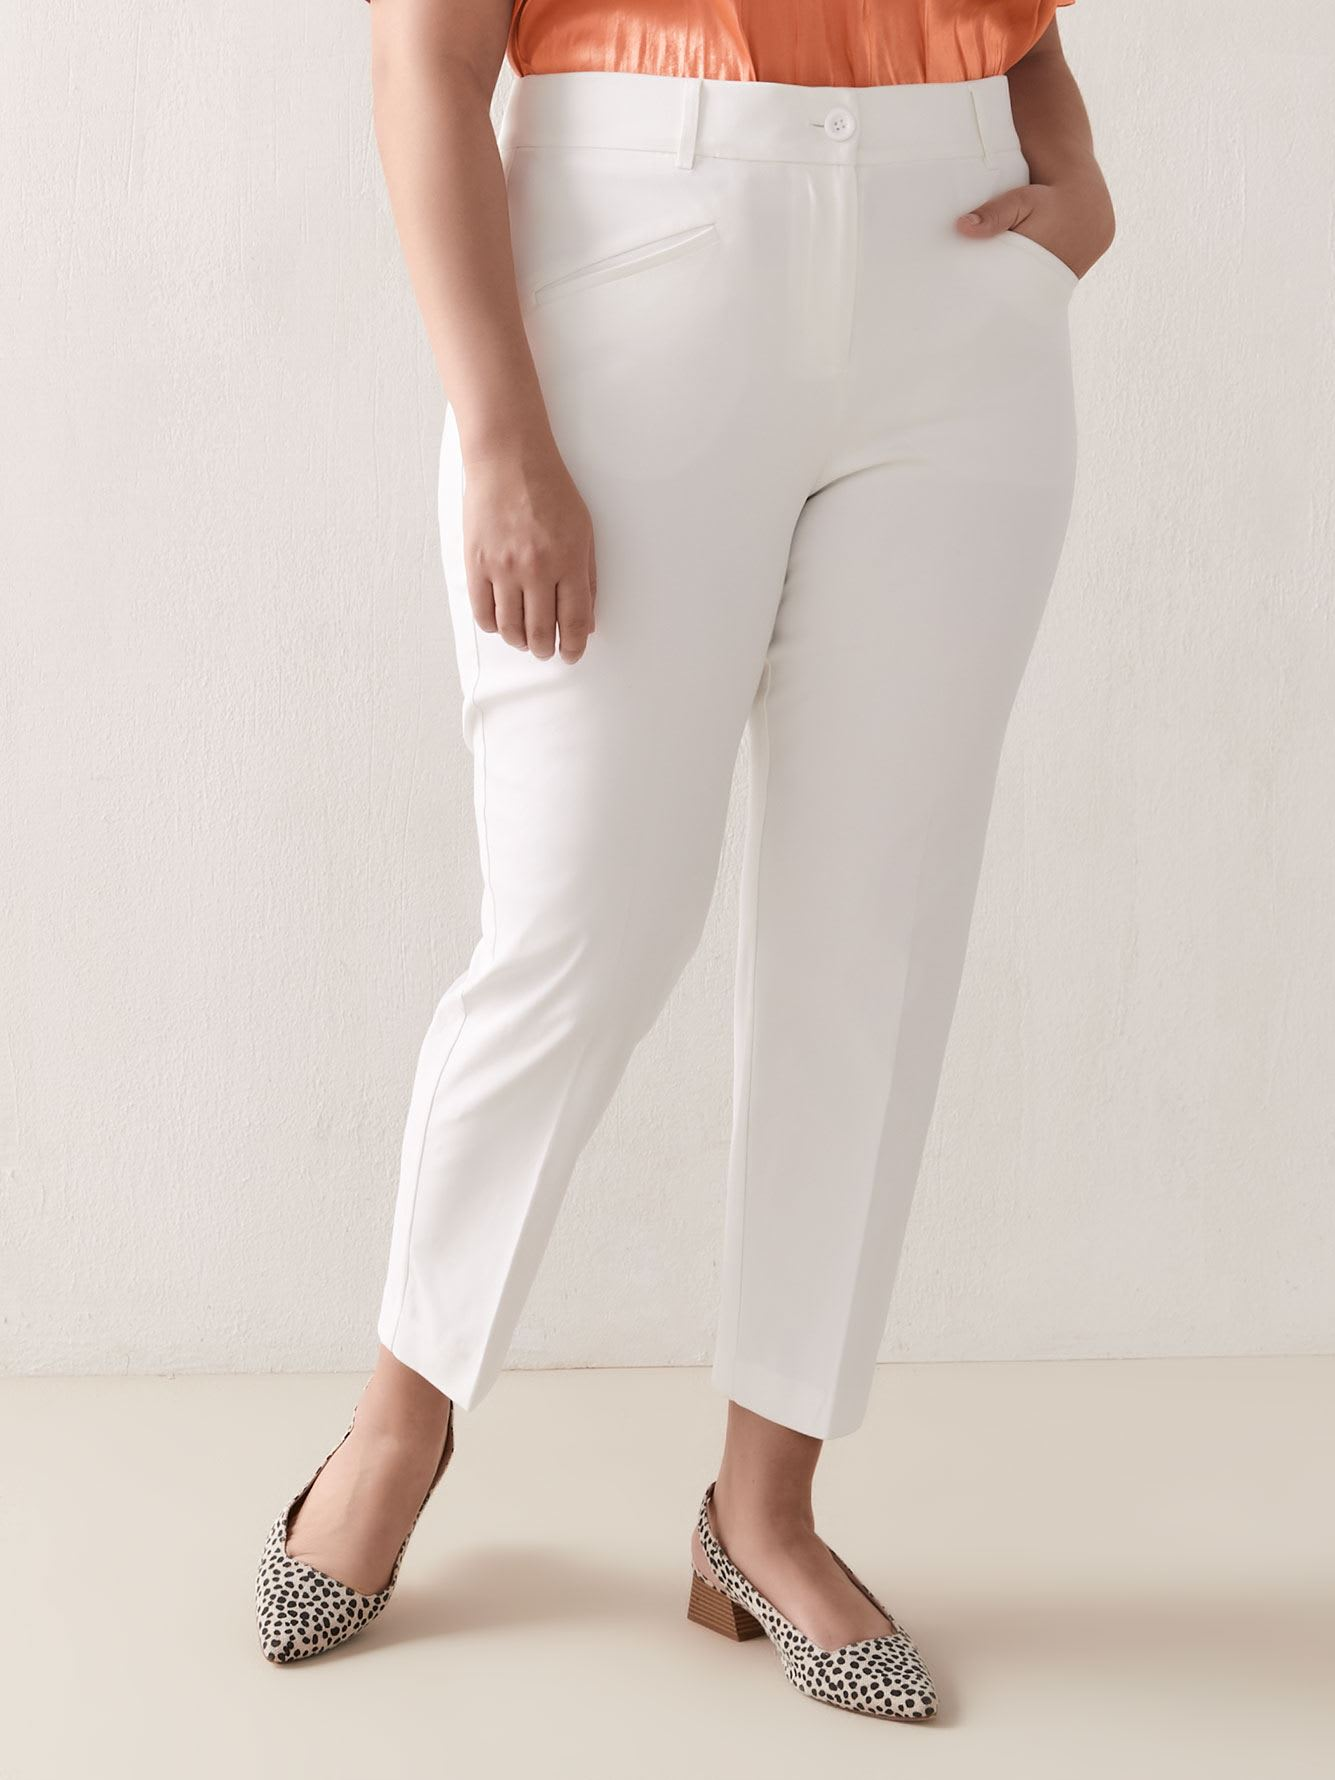 Savvy Chic Slim Leg Ankle Pant - In Every Story